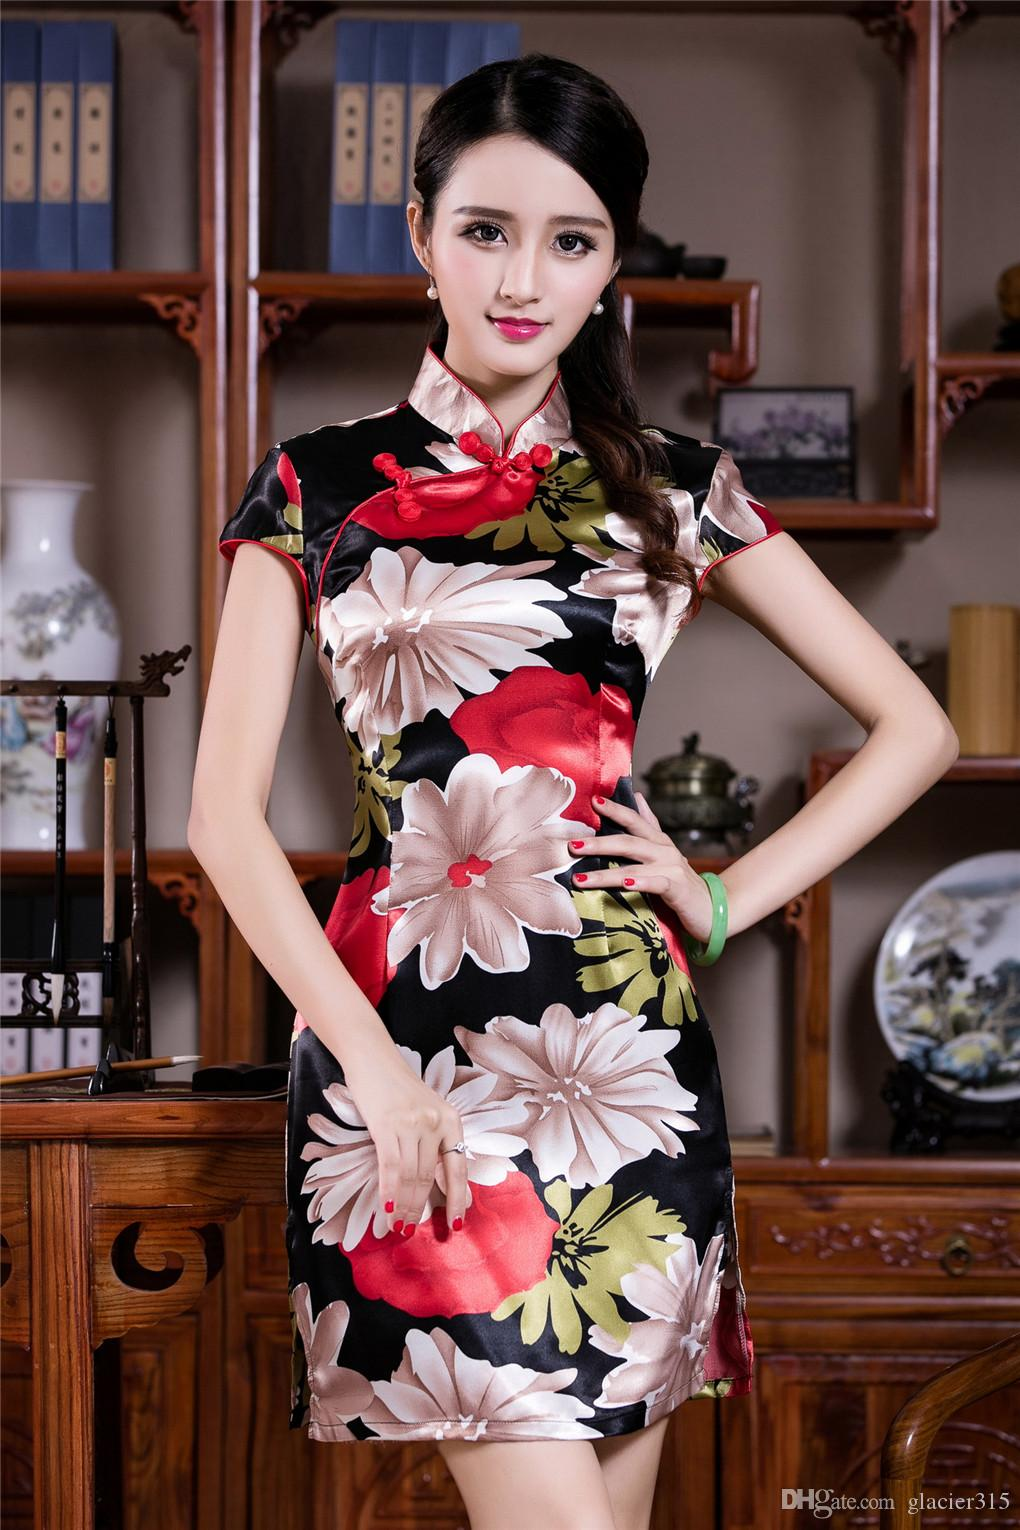 Shanghai histoire vintage pas cher robe traditionnelle qipao pour femme cheongsam style chinois robe Style vestimentaire Oriental chi pao